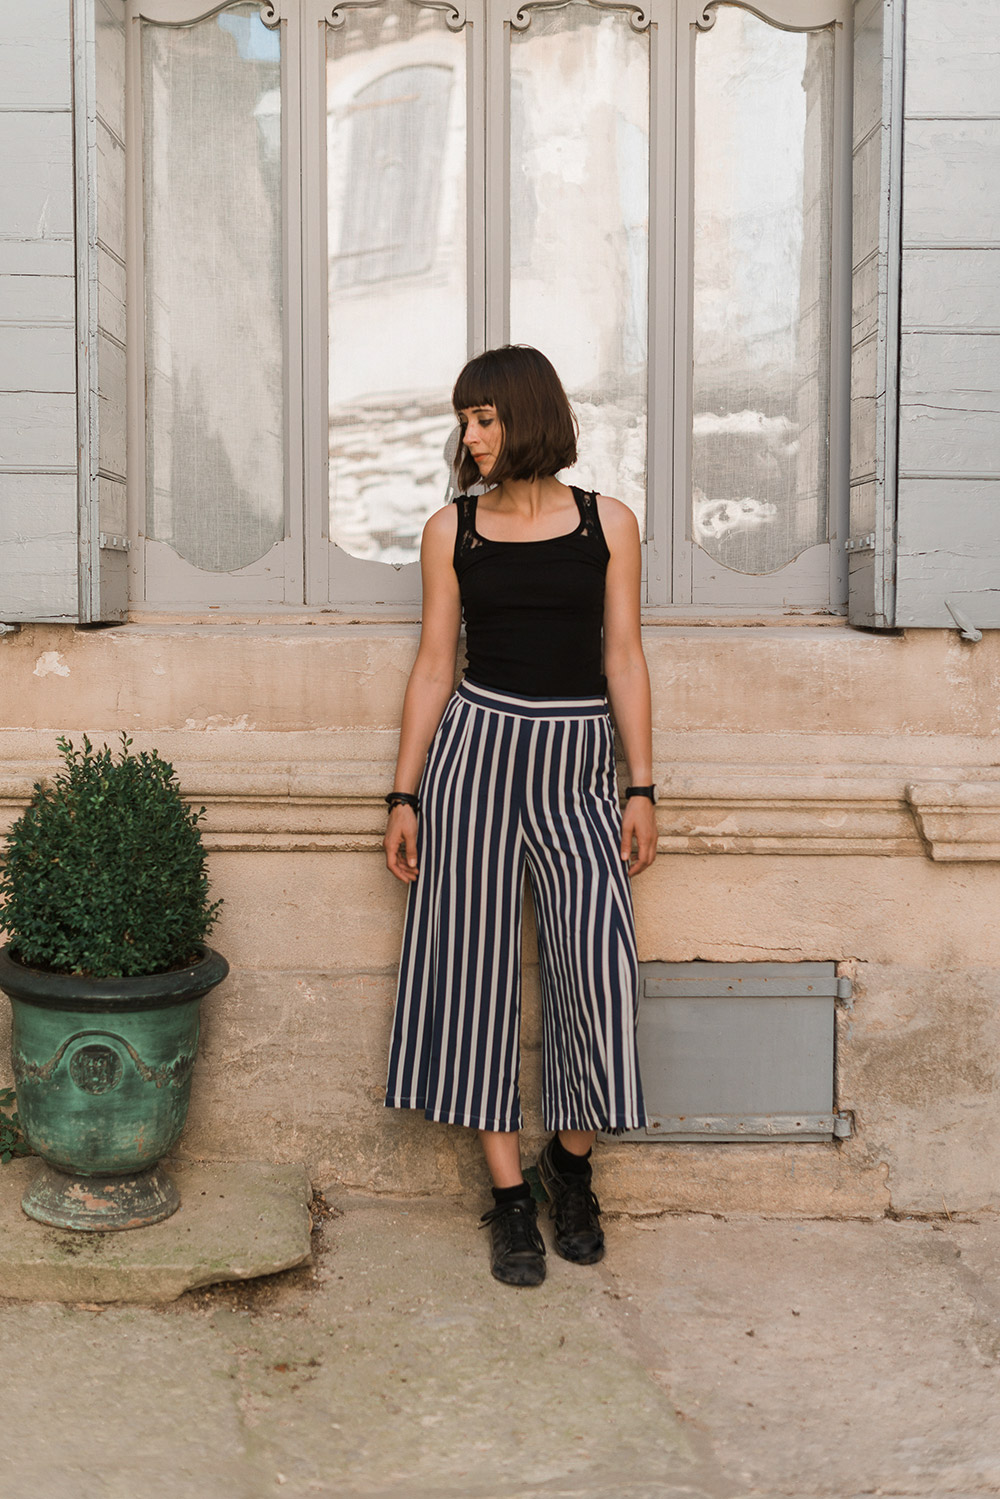 andysparkles-Modeblog-Outfits im Urlaub-Sister Style Check